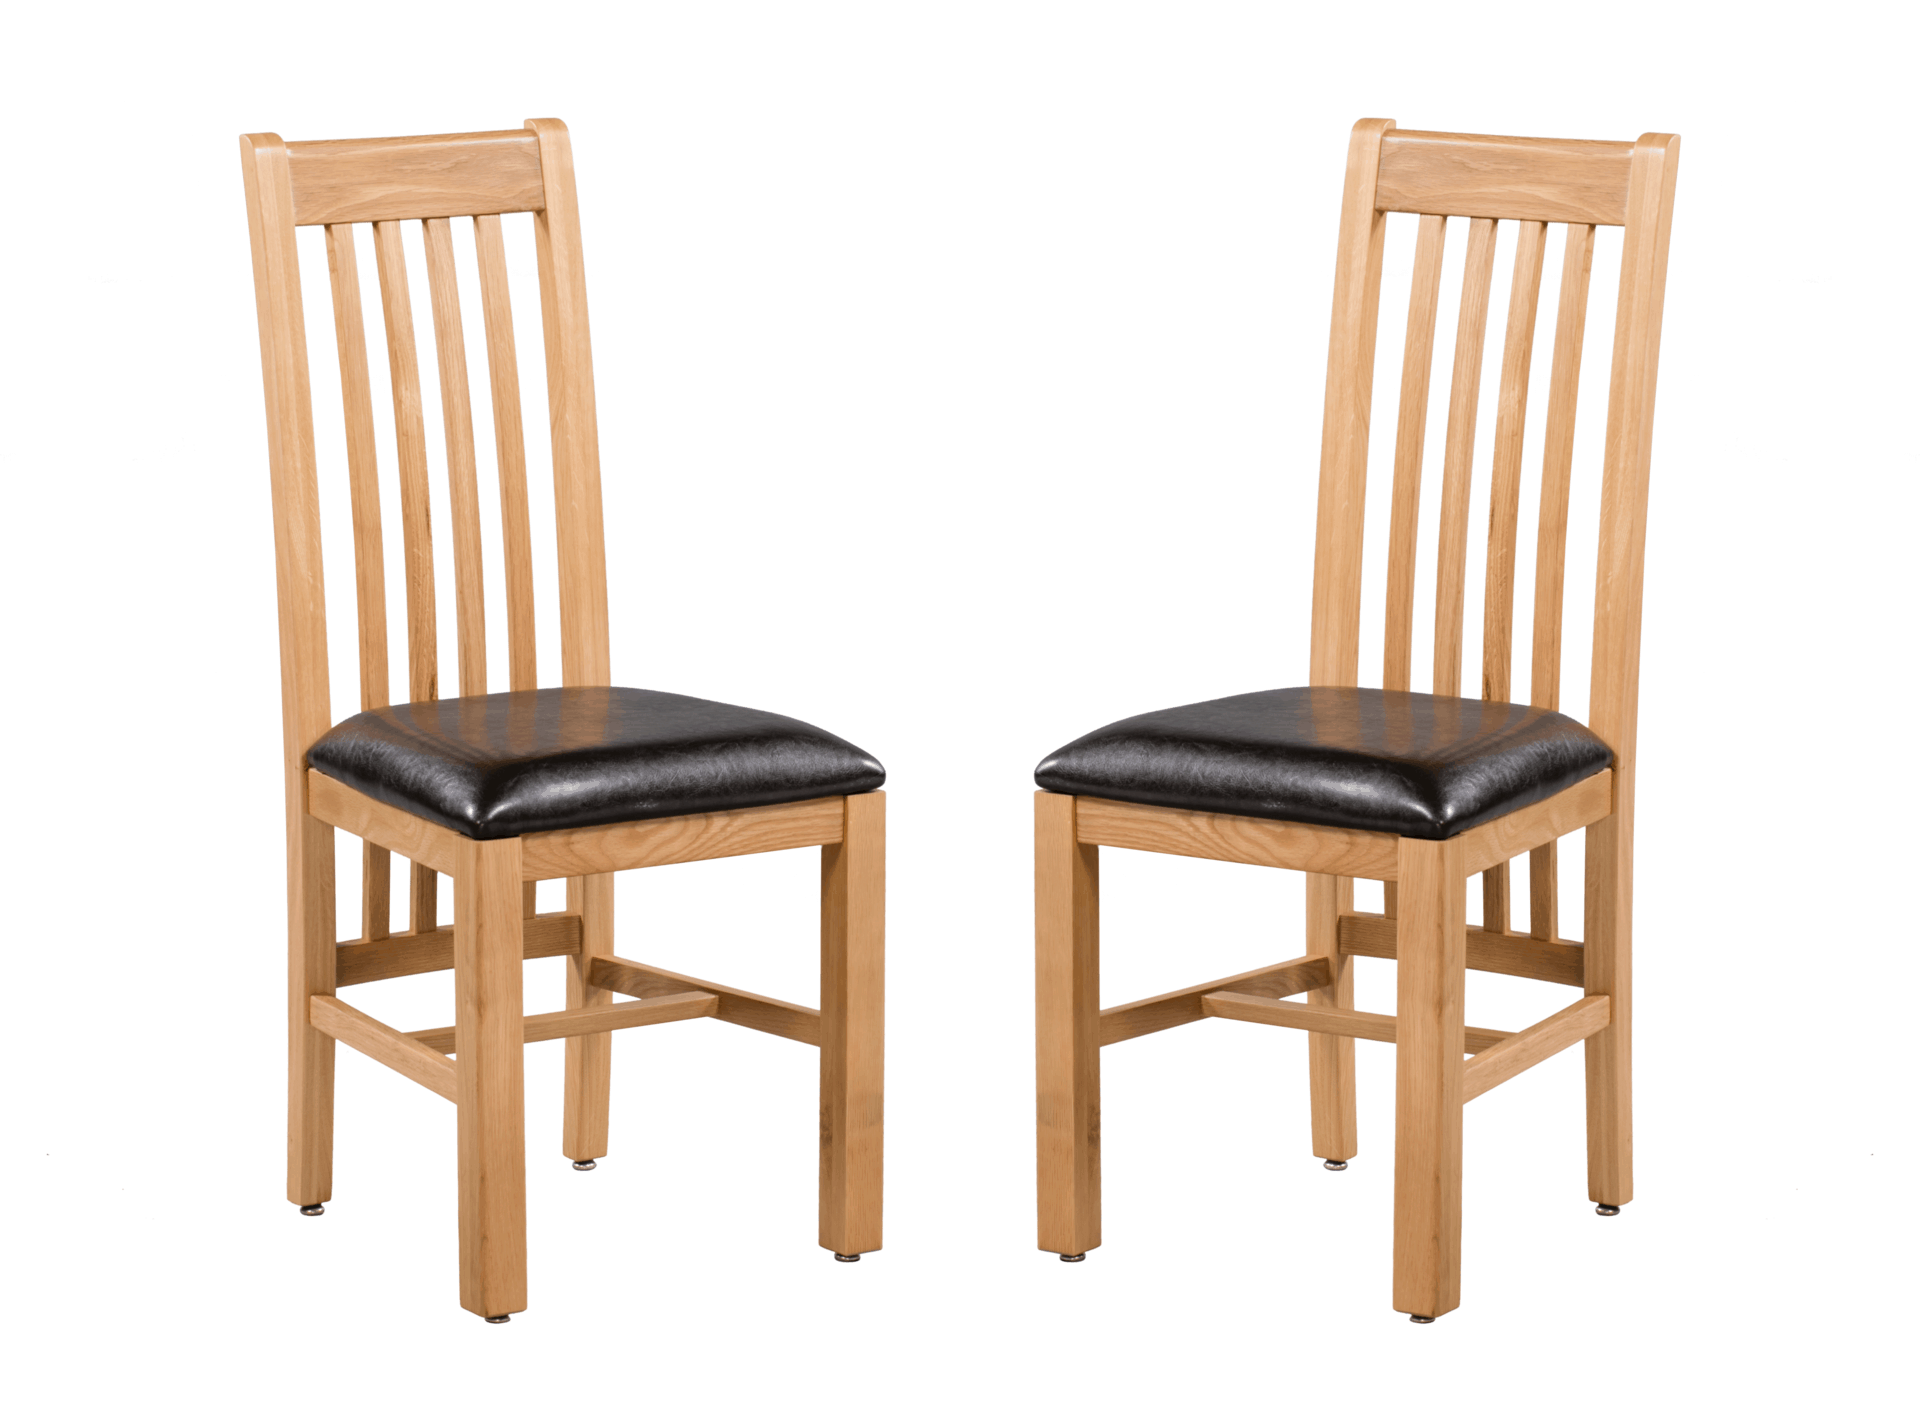 Hillsboro Upholstered Seat Solid Oak Chair (2 piece set)  sc 1 st  Chair upholstered table dining dining set sets table living ... & Chair upholstered table dining dining set sets table living ...